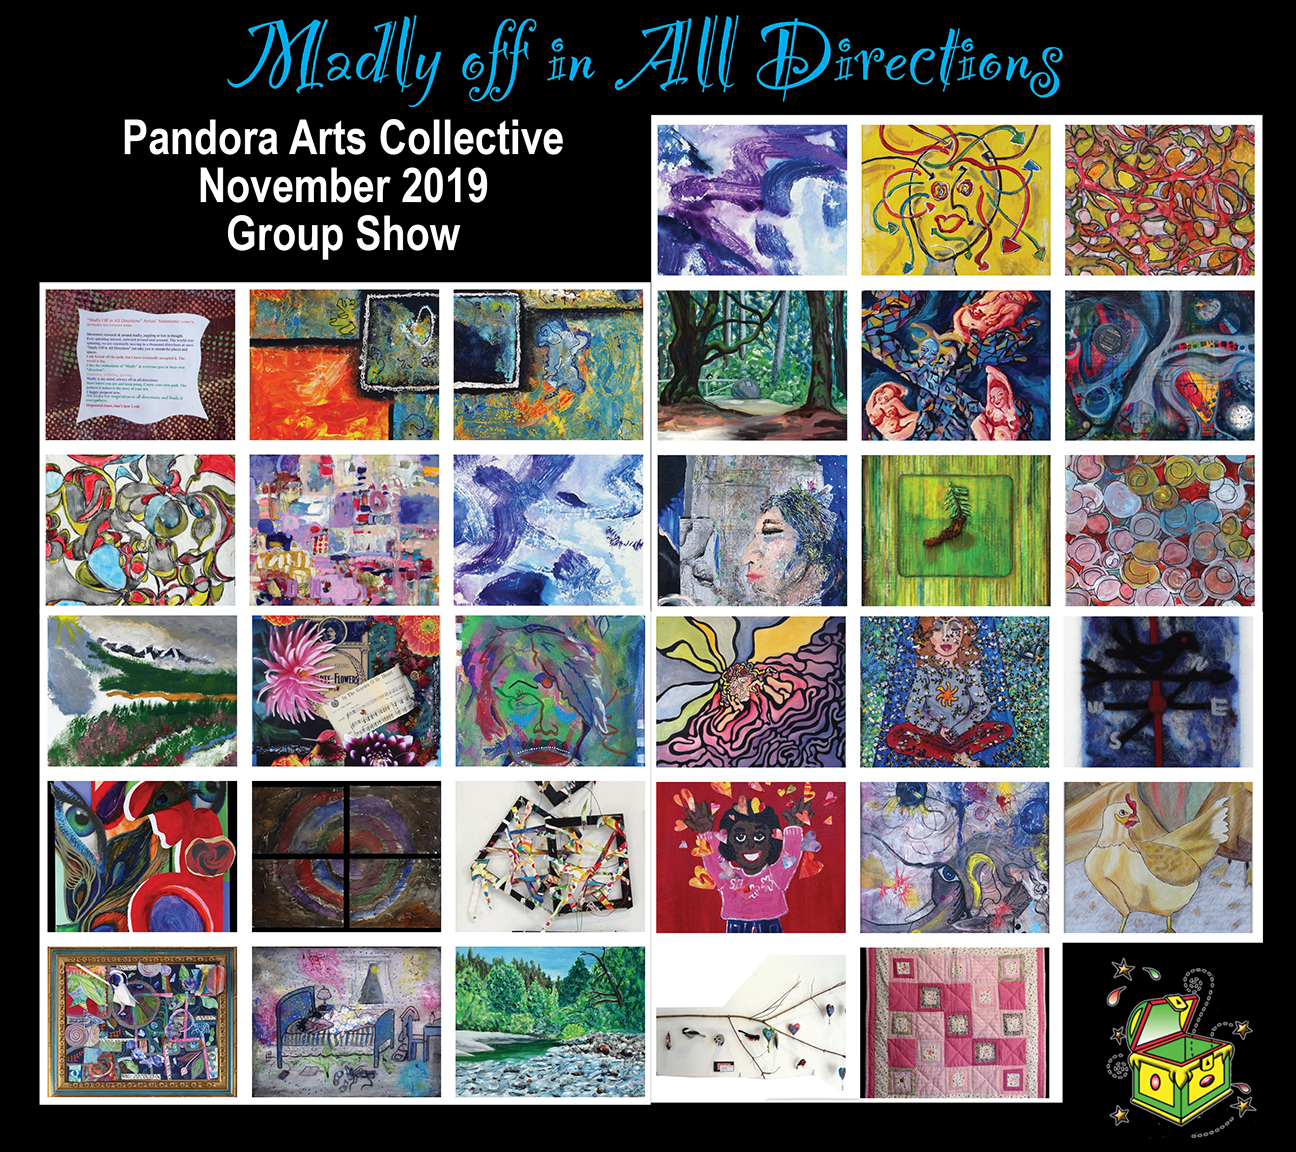 PACS Pandora Arts Collective Society poster